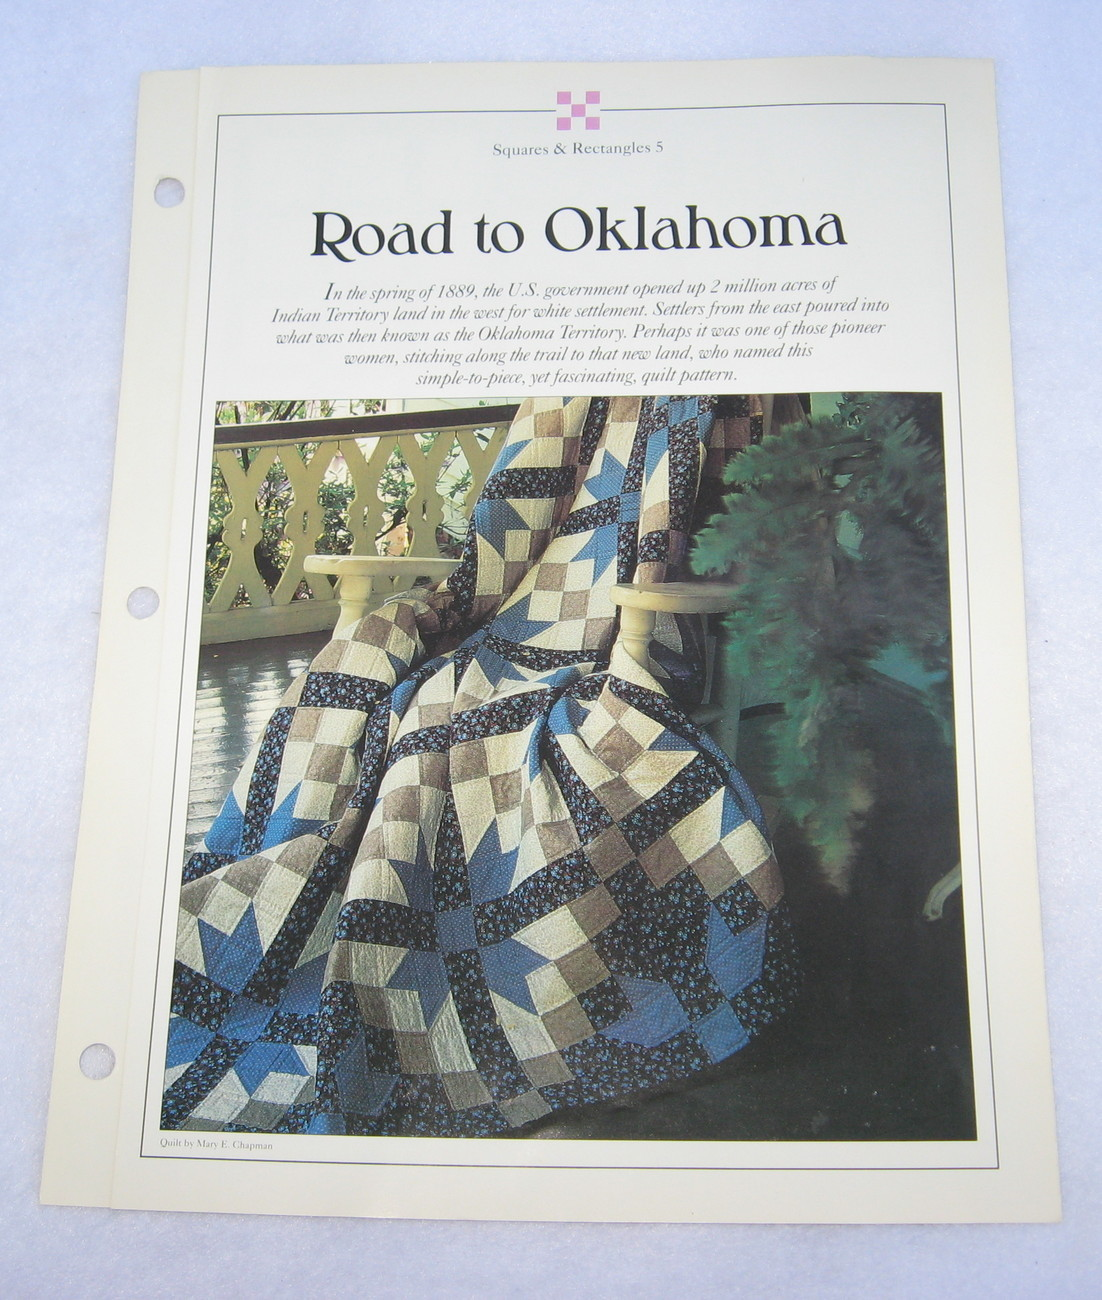 Road_oklahoma_1